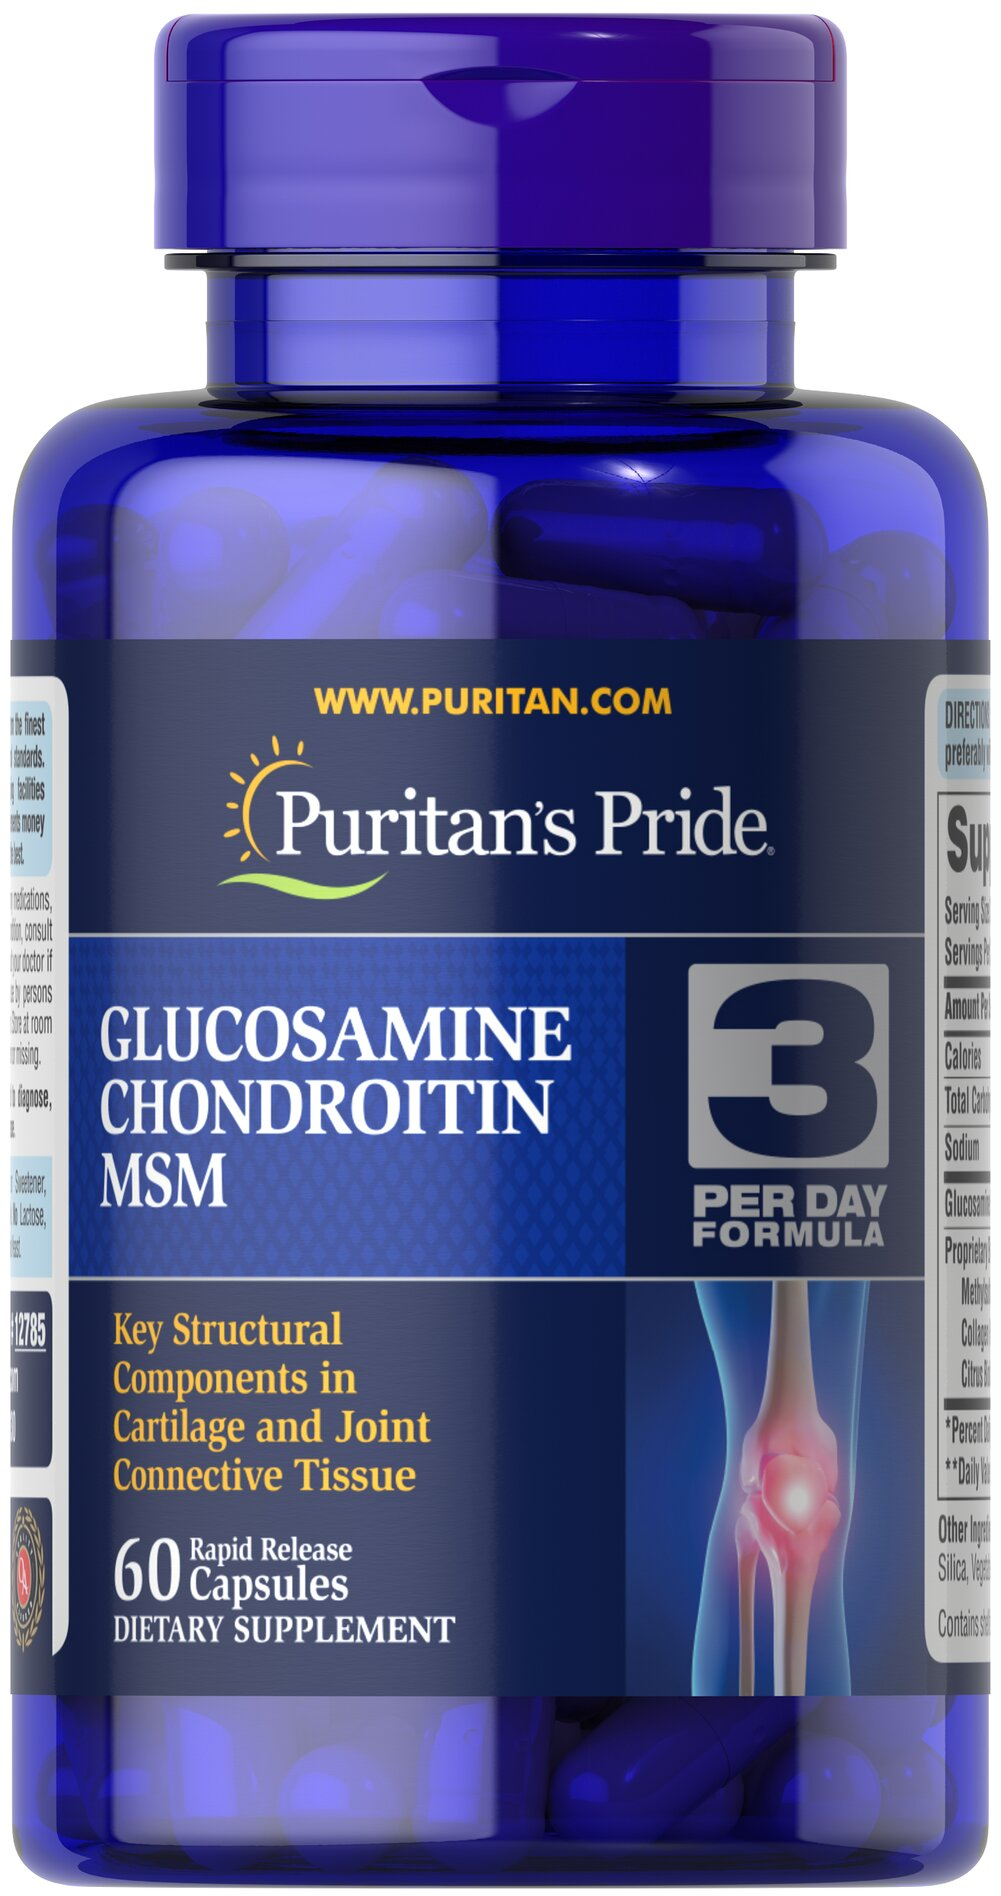 Double Strength Glucosamine, Chondroitin & MSM Joint Soother® <p>Combines the top three structural components found in popular joint support products — Glucosamine, Chondroitin and MSM — with amino and herbal support from Collagen and Boswellia Serrata**</p><p>This high-quality formula delivers 1,500 mg of Glucosamine HCI to help  support cartilage, lubricate the joints, and helps with occasional joint stress due to exercise or physical activity**</p> 60 Capsules